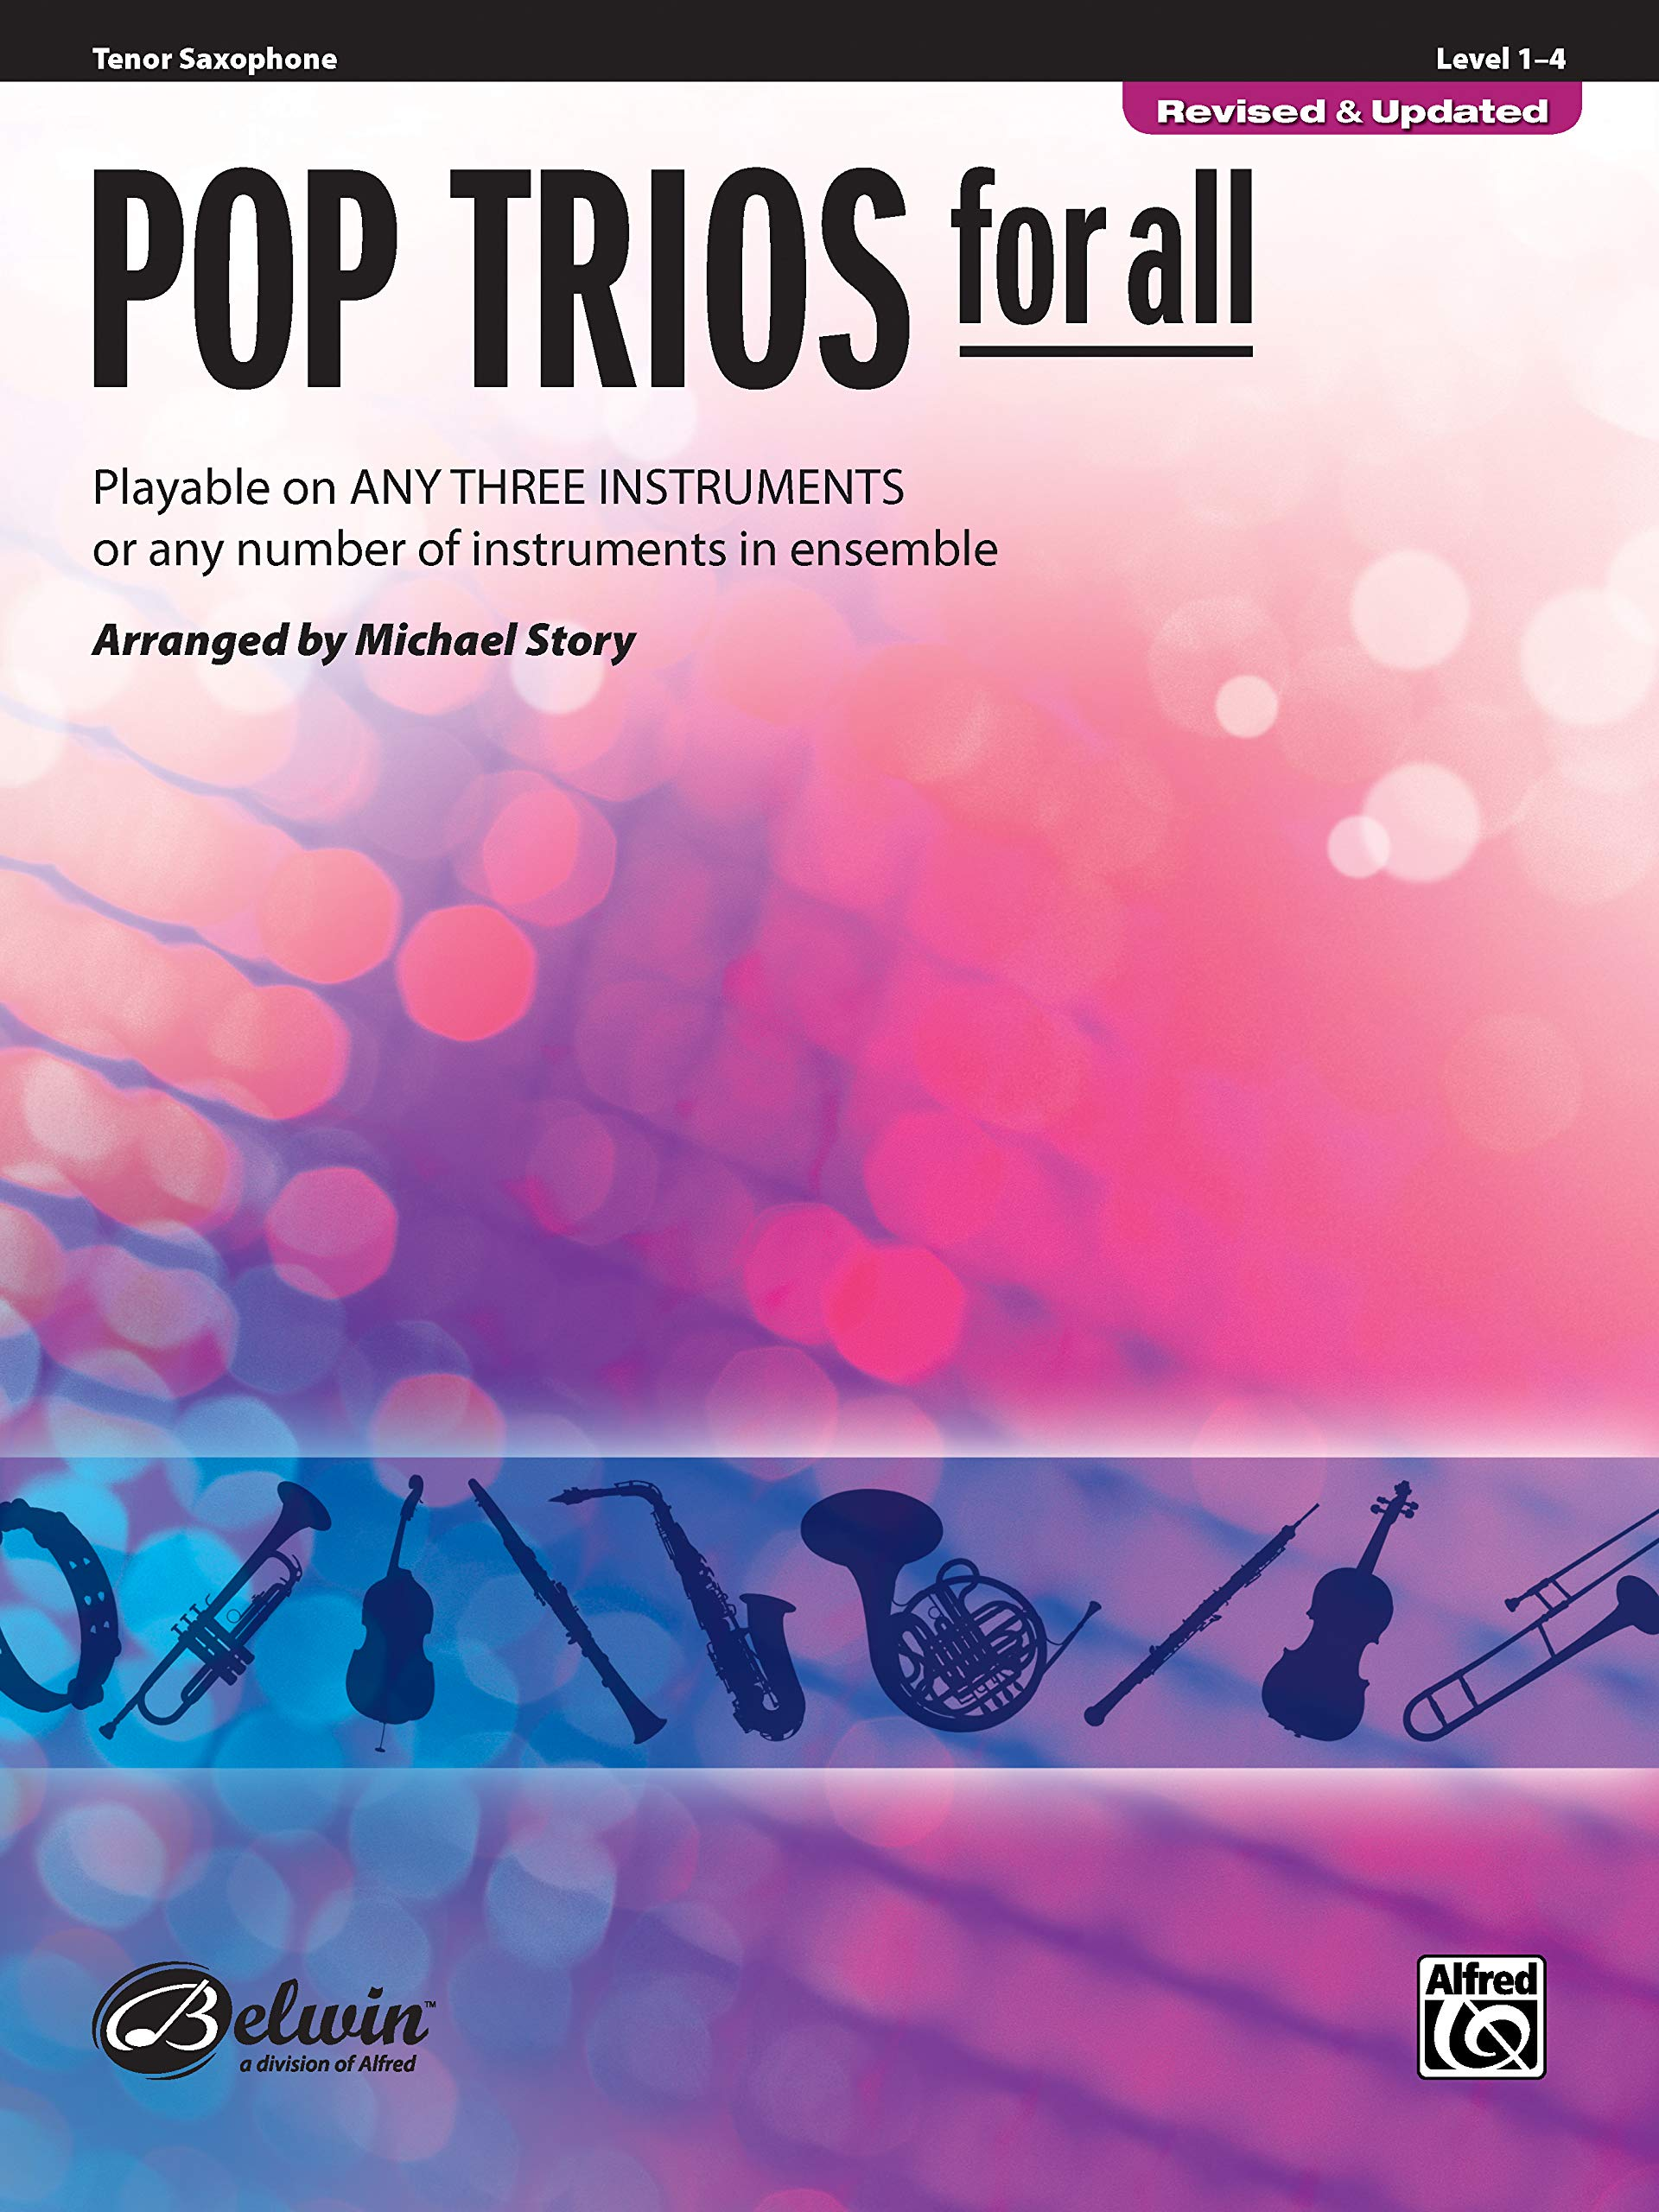 Pop Trios For All   Tenor Saxophone  Playable On Any Three Instruments Or Any Number Of Instruments In Ensemble  Pop Instrumental Ensembles For All